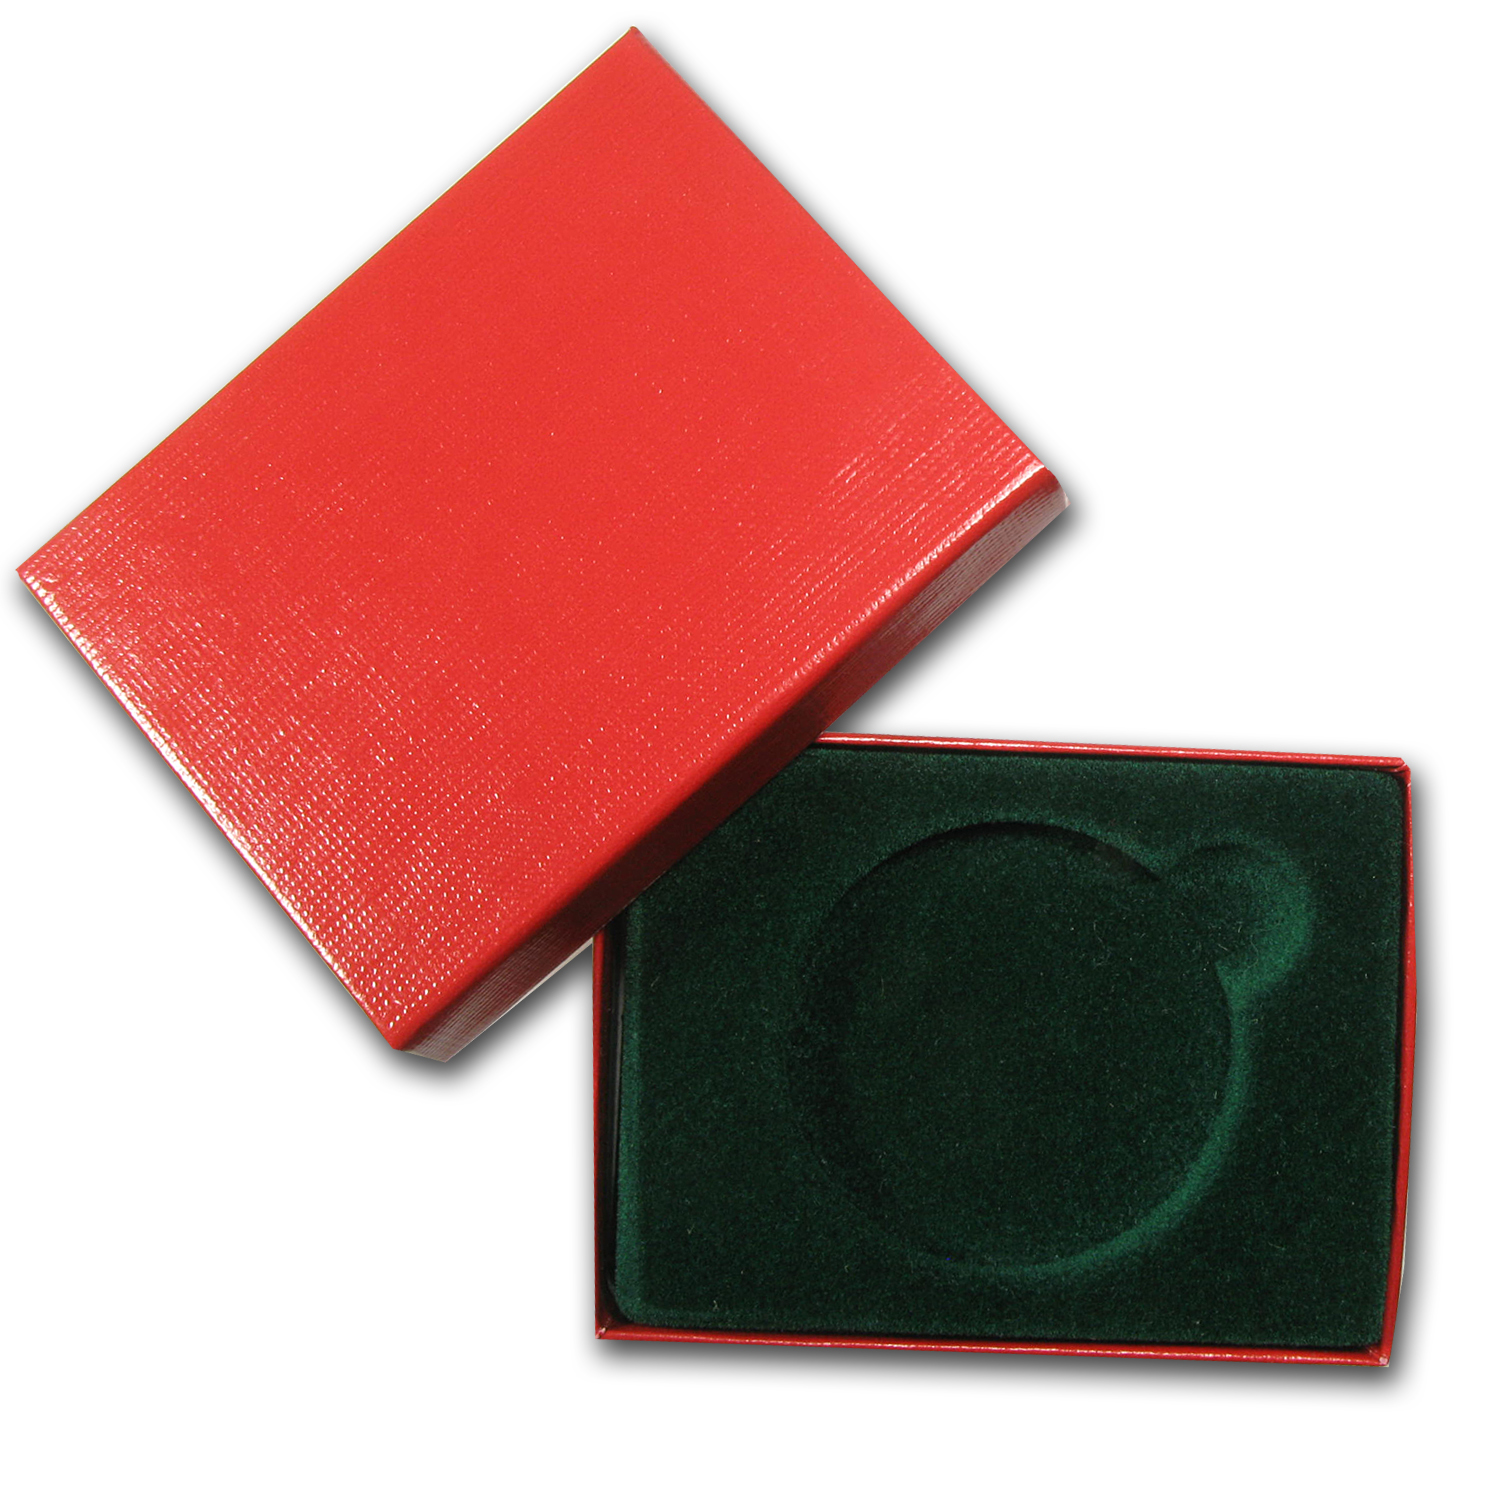 2 in. x 3 in. Red w/Green Felt Lined Gift Box for Silver Round